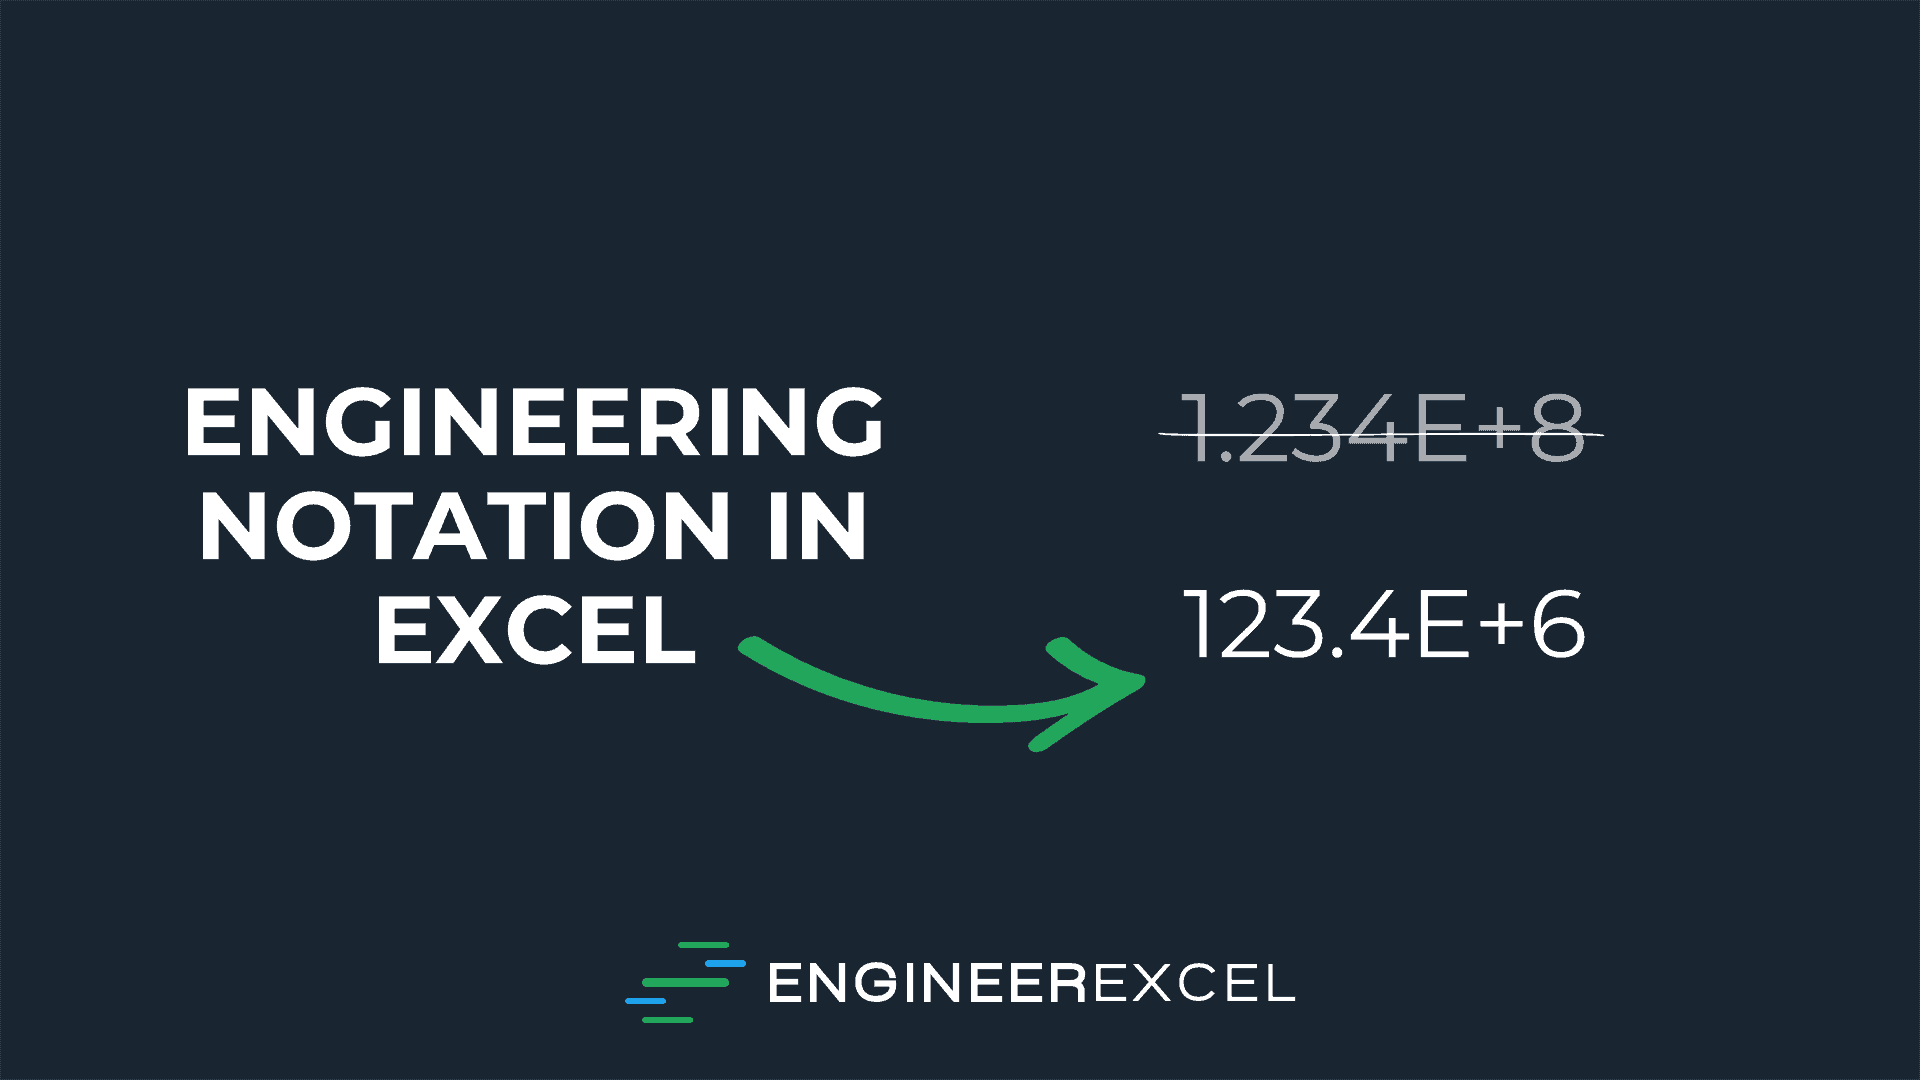 engineering notation in excel